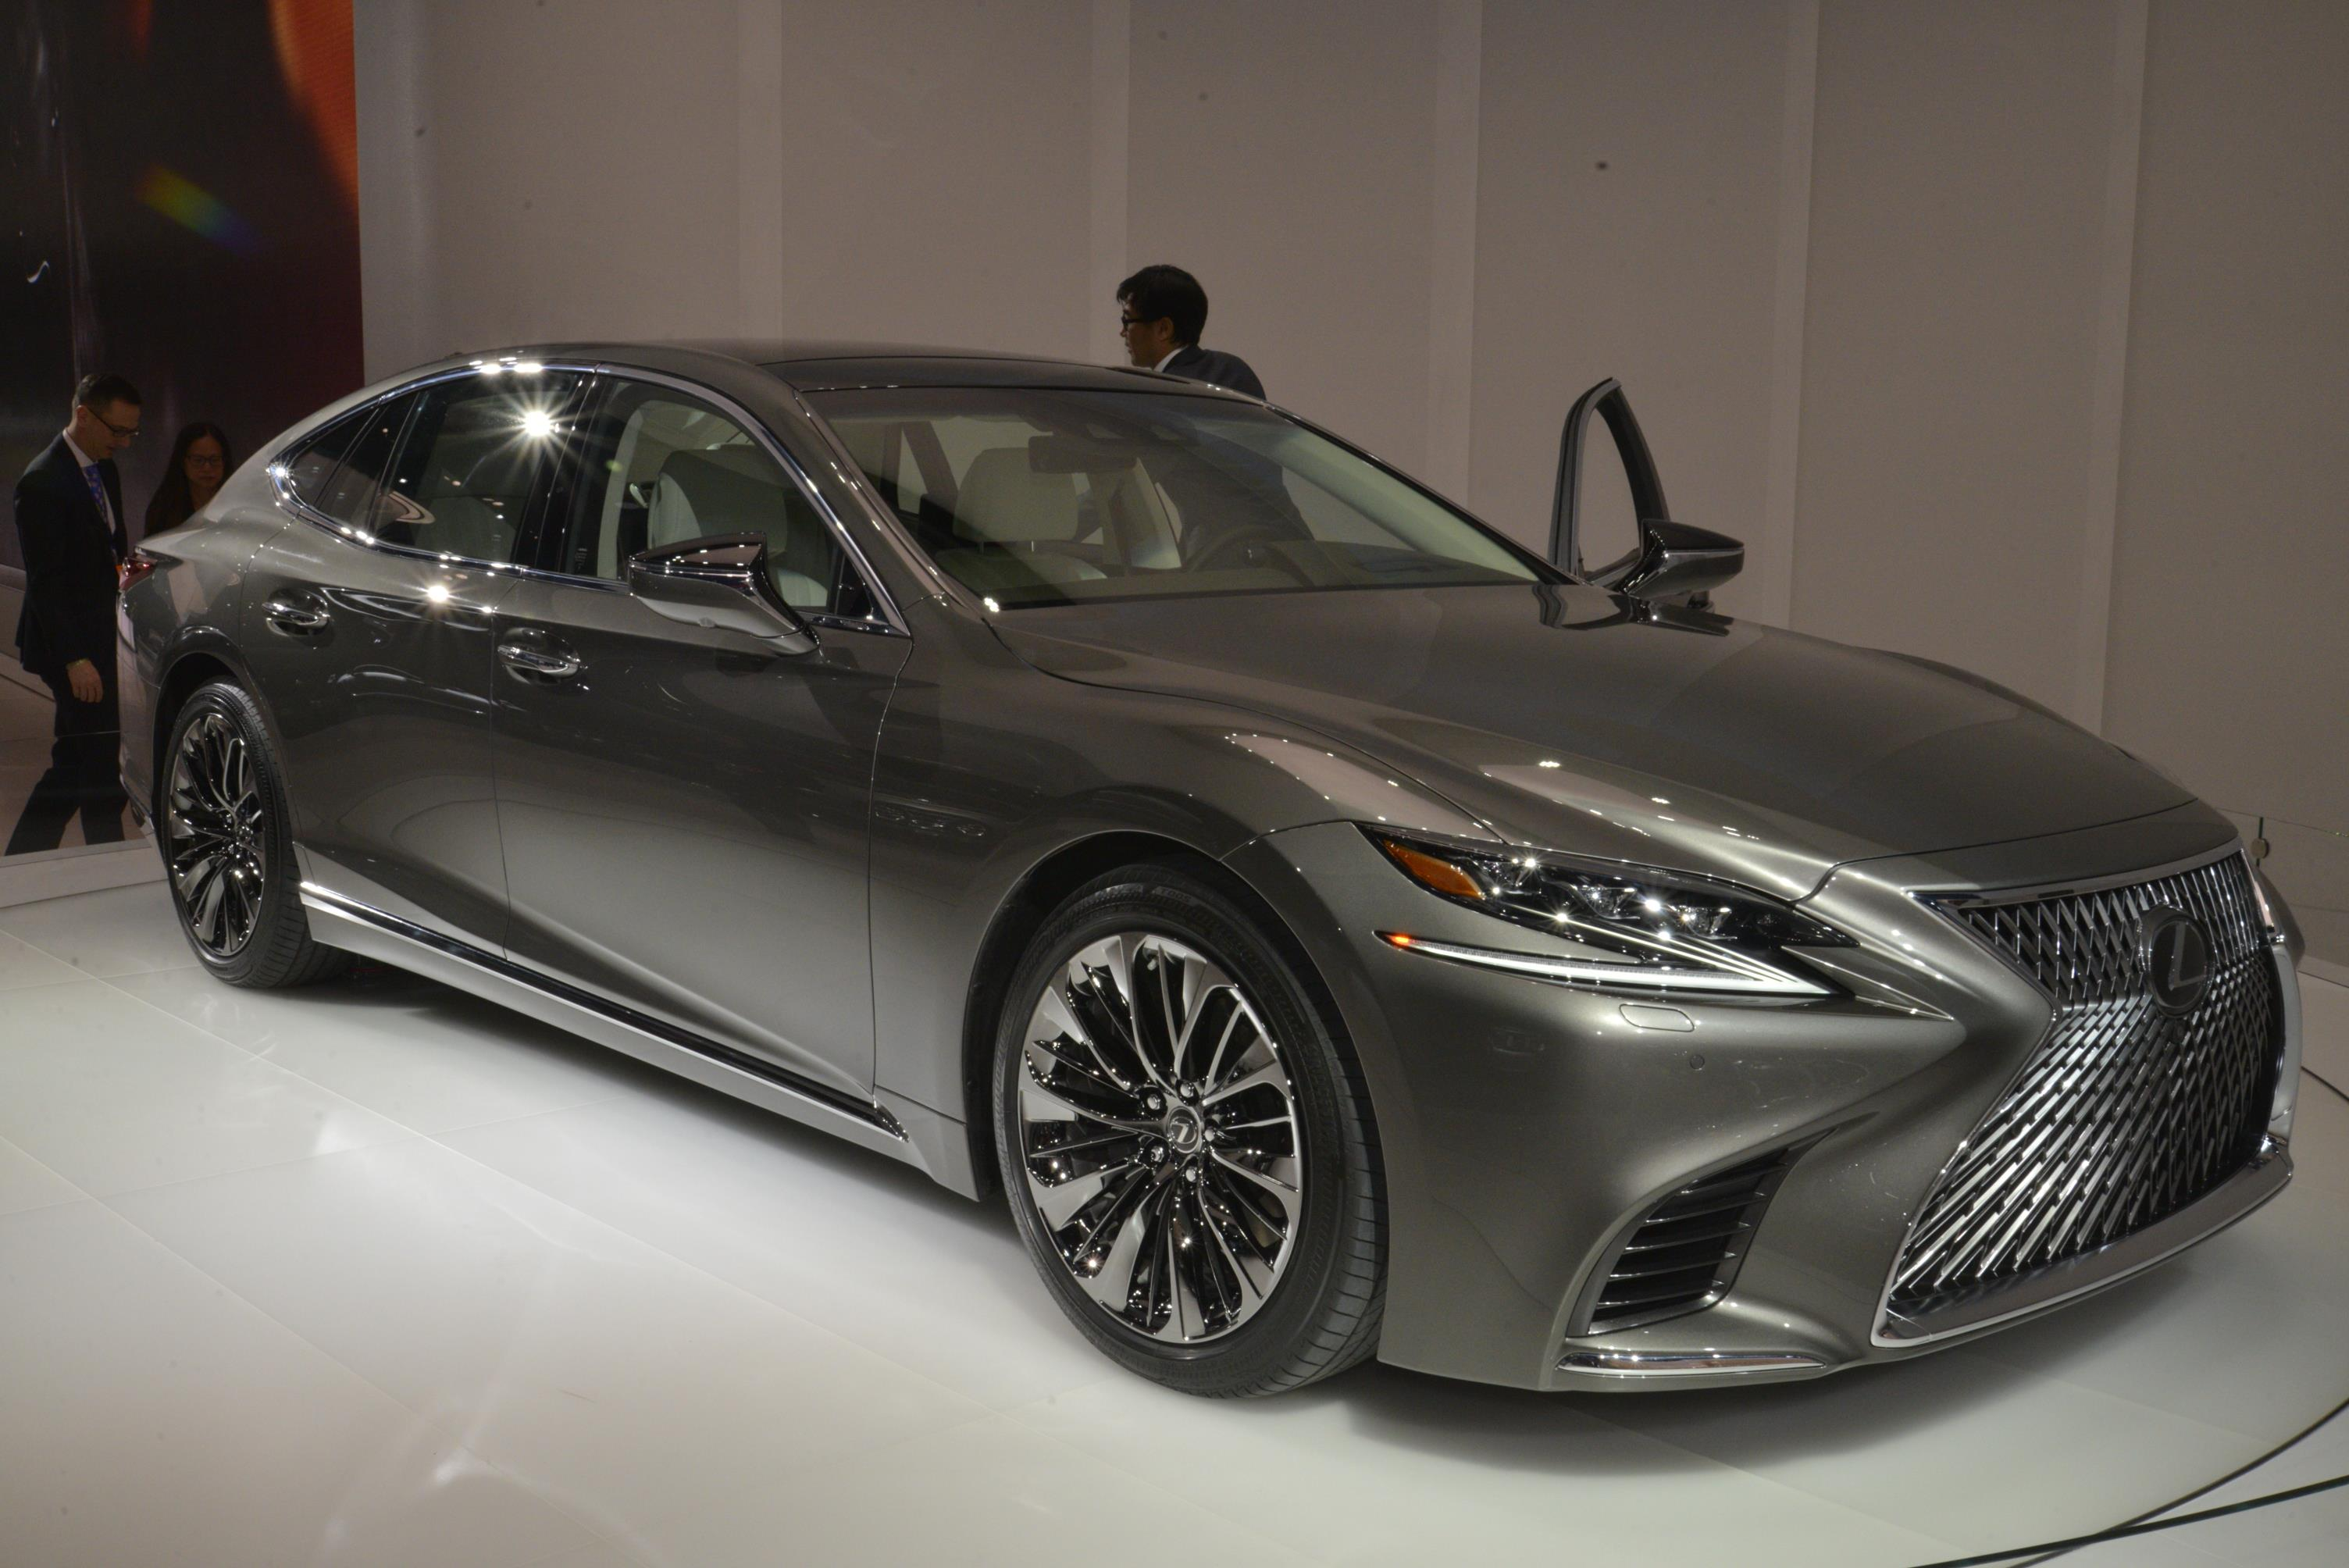 du watch lexus petites la samourai youtube automobiles rencontre observations rx essai